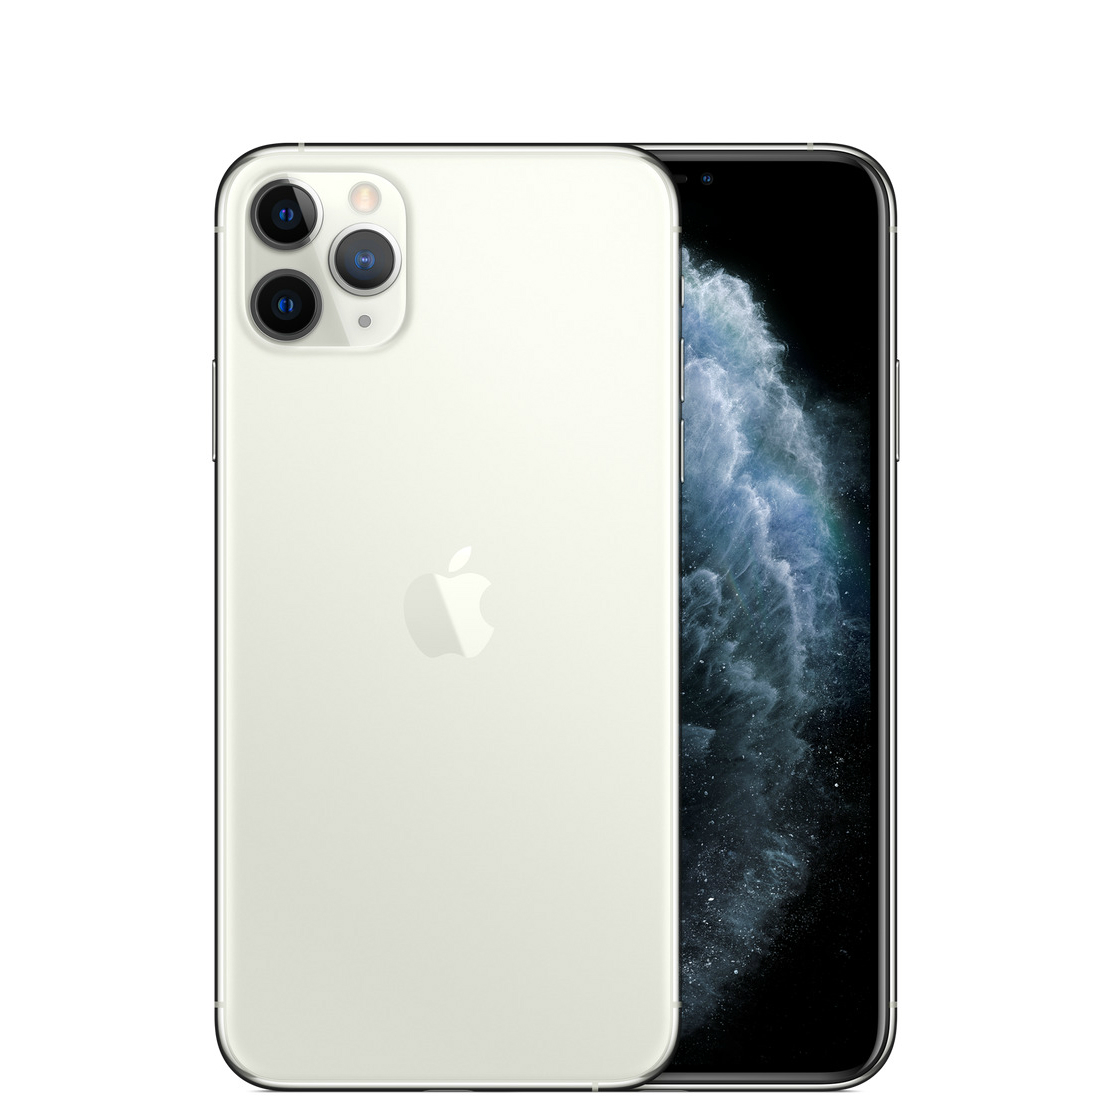 Image of Apple iPhone 11 Pro Max 64GB A2220 Dual Sim with Tempered Glass Screen Protector - Silver